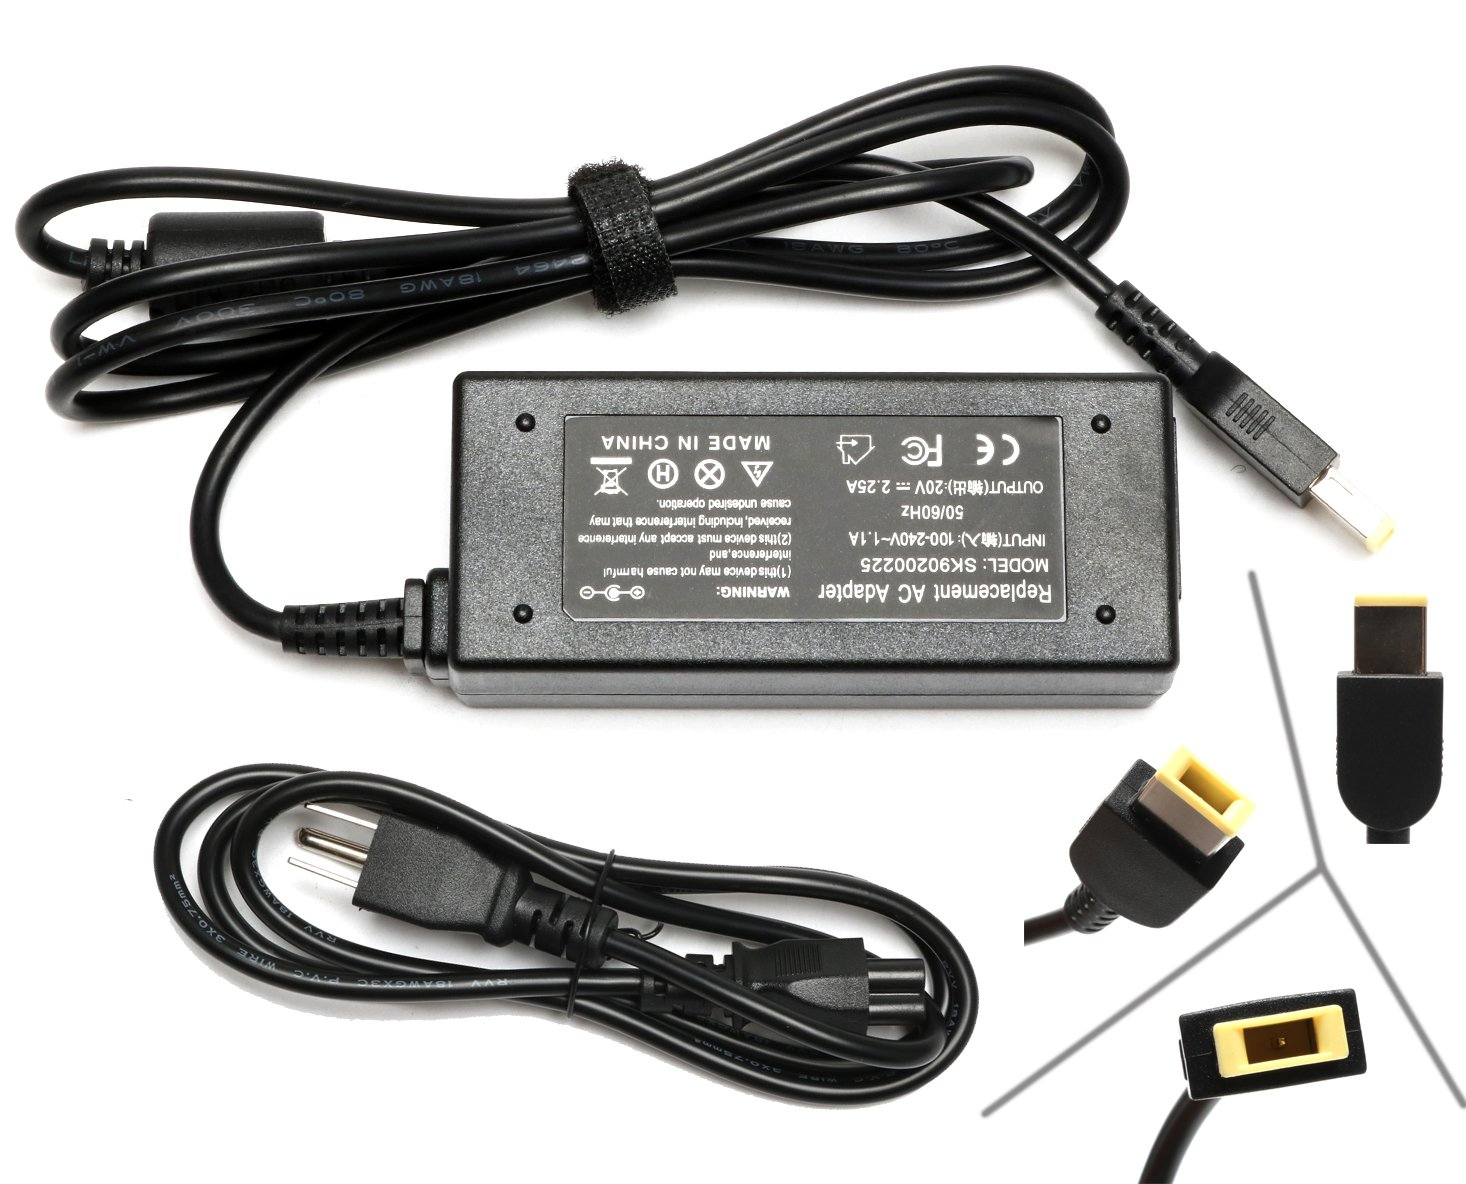 Adlx45 Dlc3 A Adlx45 Ncc2 A Adlx45 Nlc2 A Adlx45 Nlc3 A 45 N0289 45 N0294 45 N0295 Pa 1450 12 0 C19880 36200280 Laptop Charger For 45 W Lenovo Power Supply Charger Adapter by Rolada